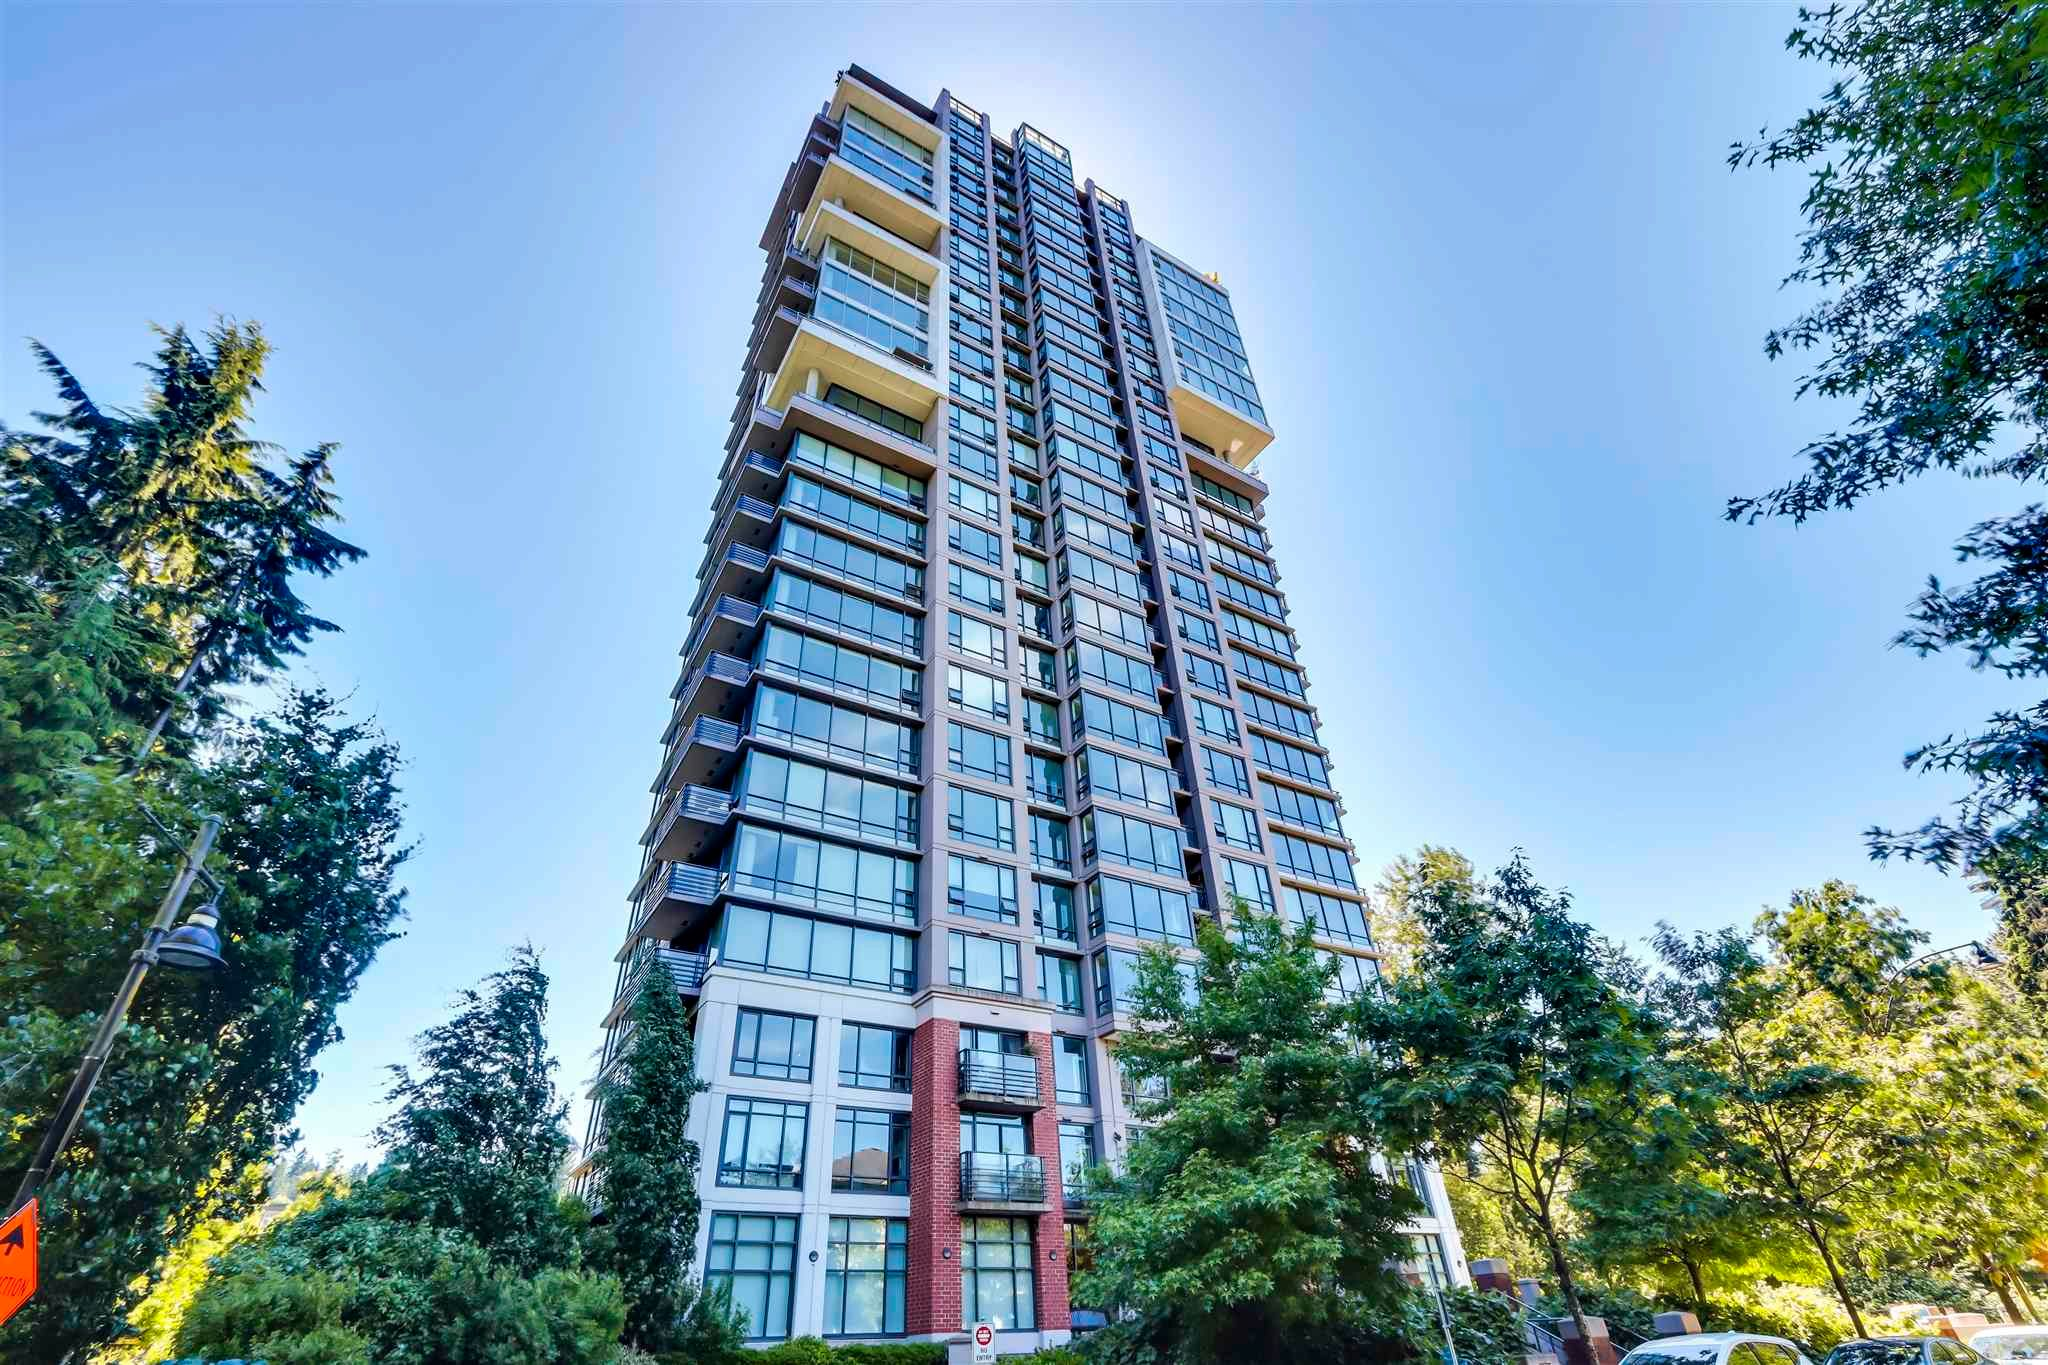 """Main Photo: 2203 301 CAPILANO Road in Port Moody: Port Moody Centre Condo for sale in """"THE RESIDENCES"""" : MLS®# R2612329"""